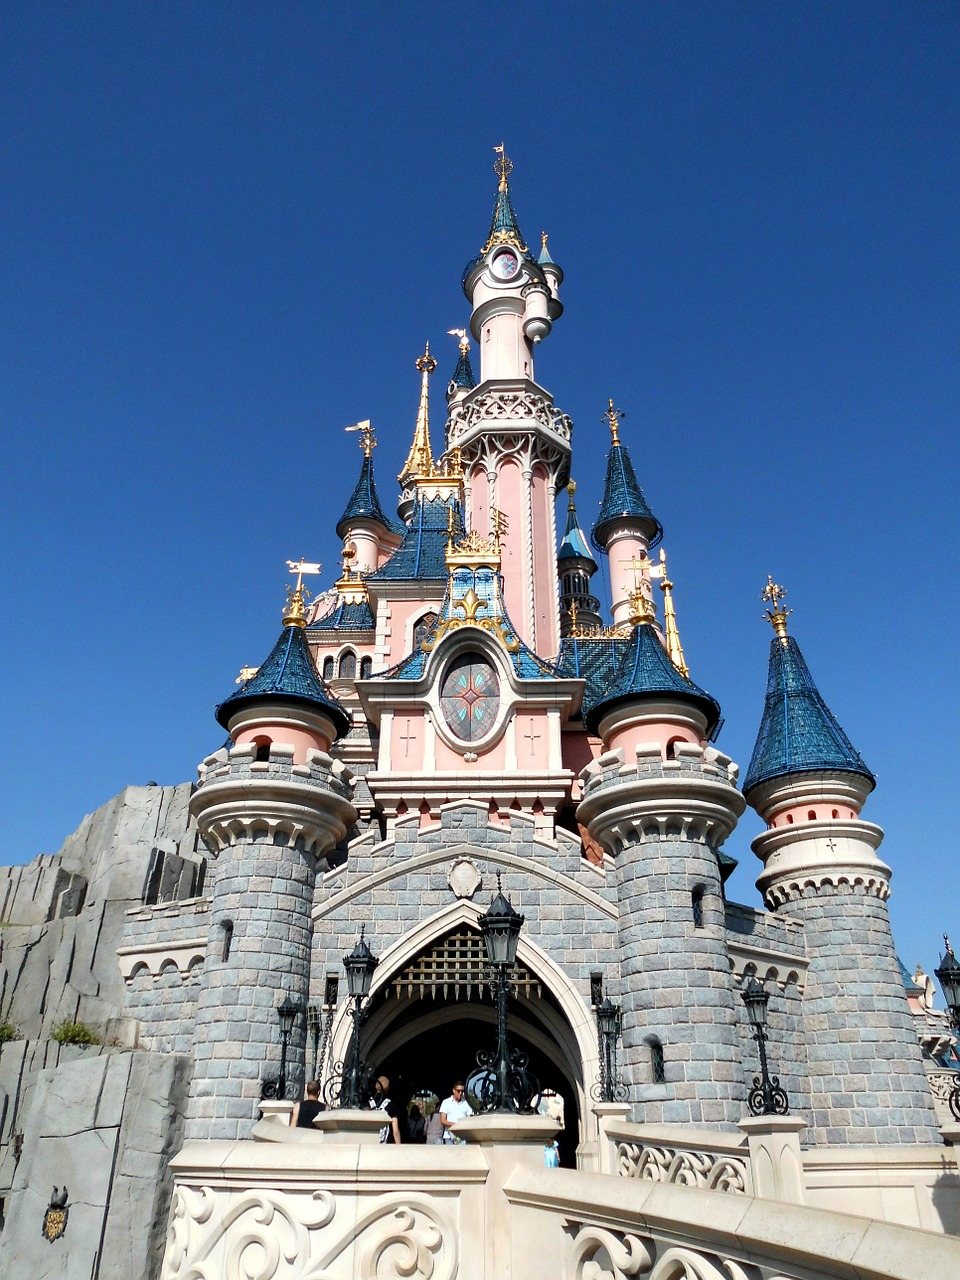 Child Trafficking at Disneyland | Are Your Kids Being Targeted?